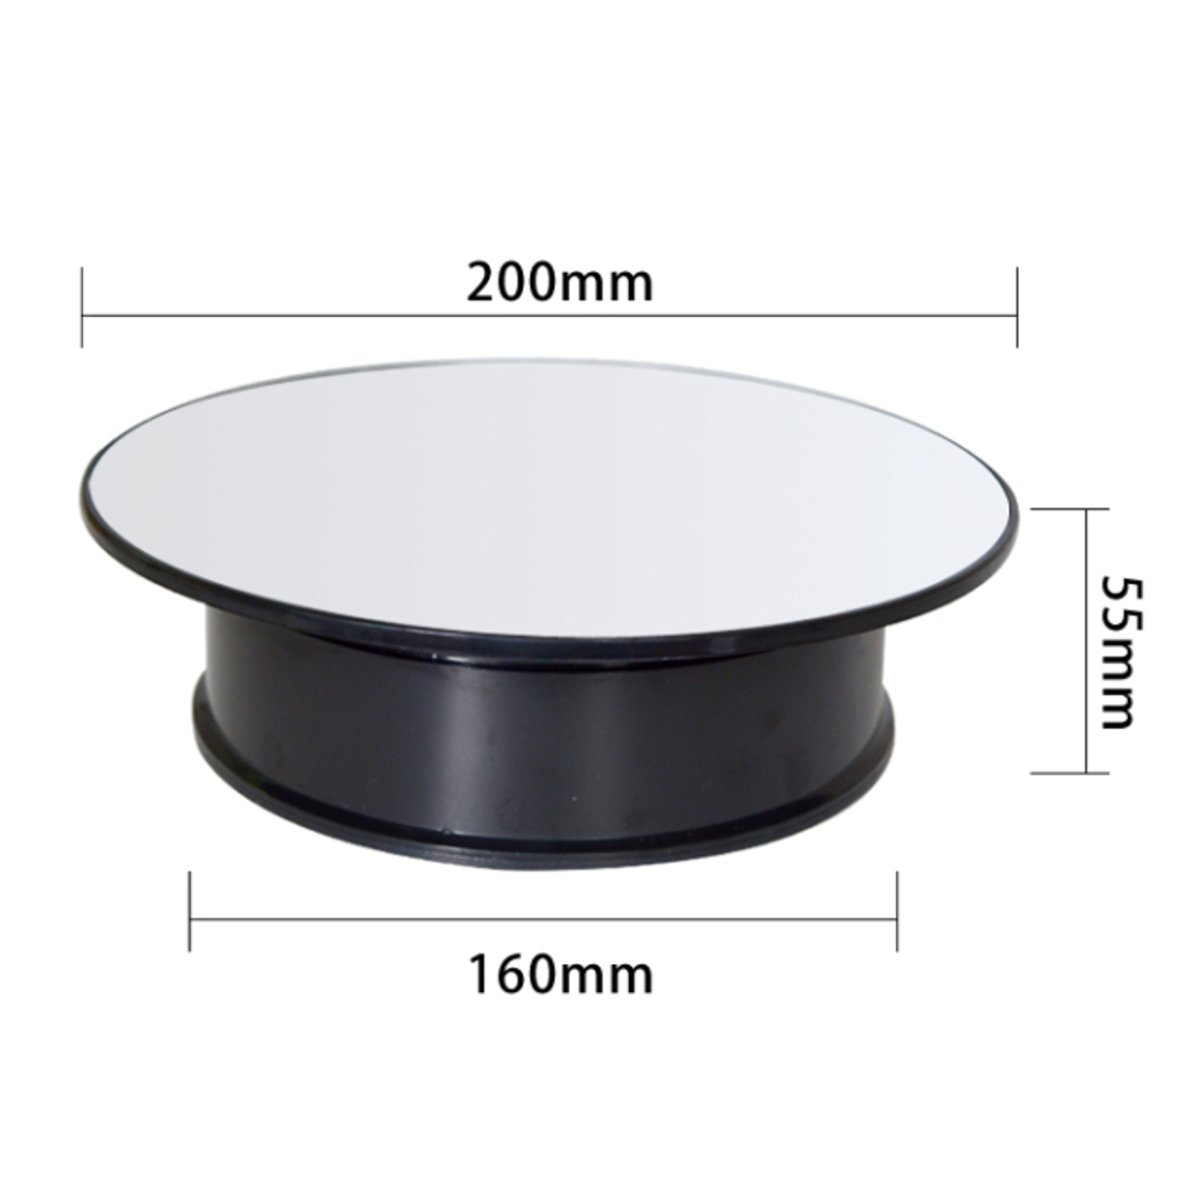 Round Mirror Top Electric Motorized 360° Turntable Rotary Jewelry Display Stand Showcase